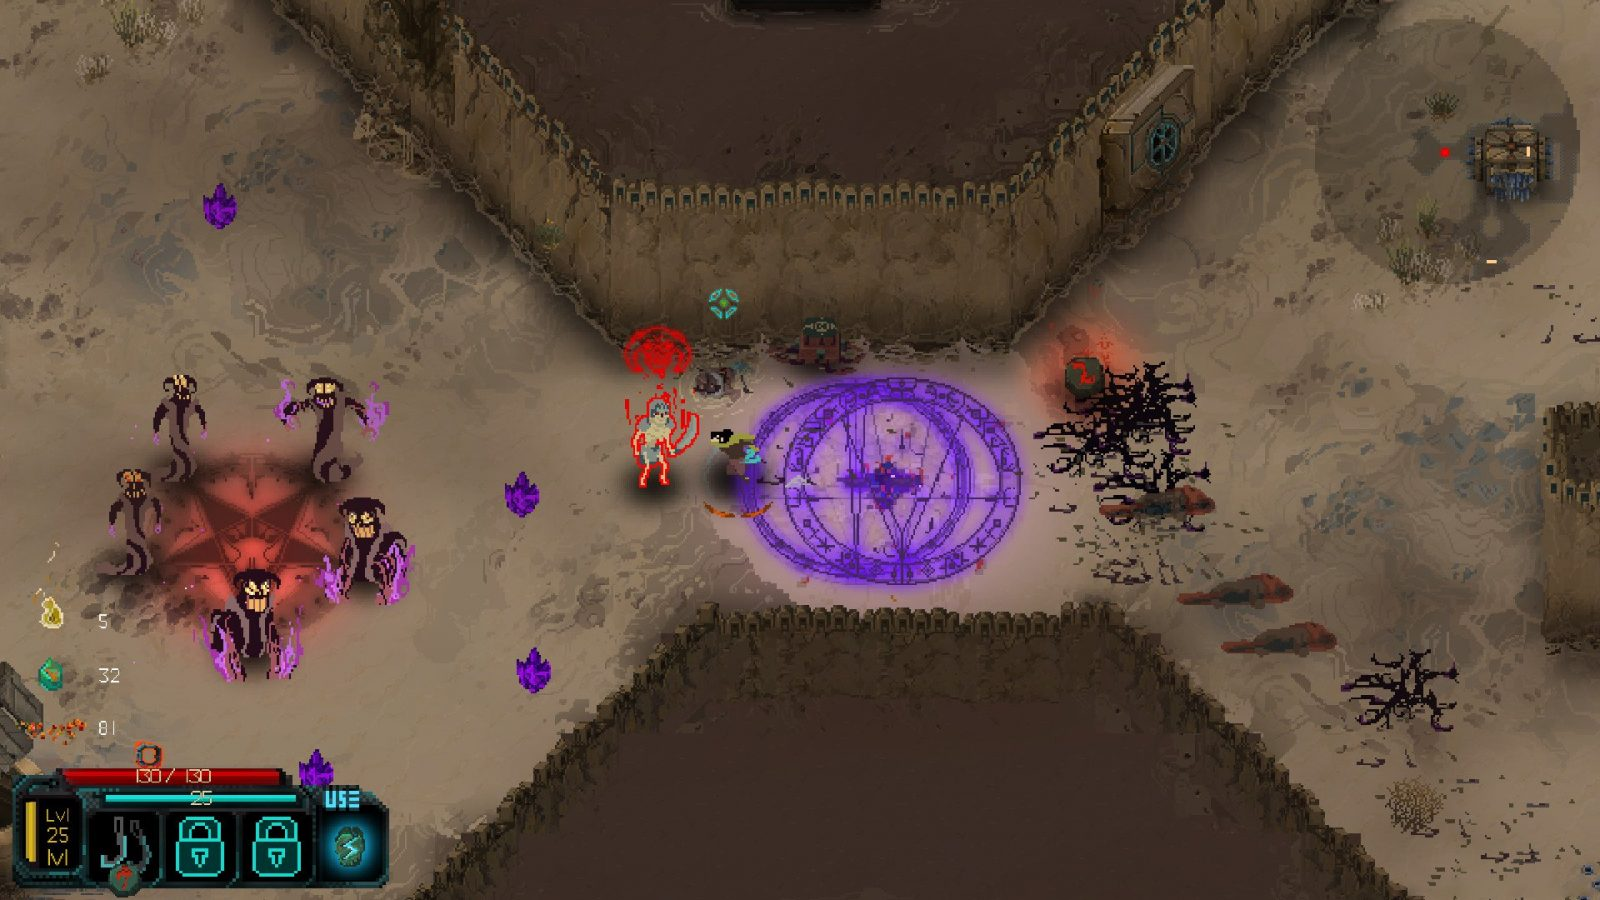 Children of Morta Release Date and New Trailer Revealed